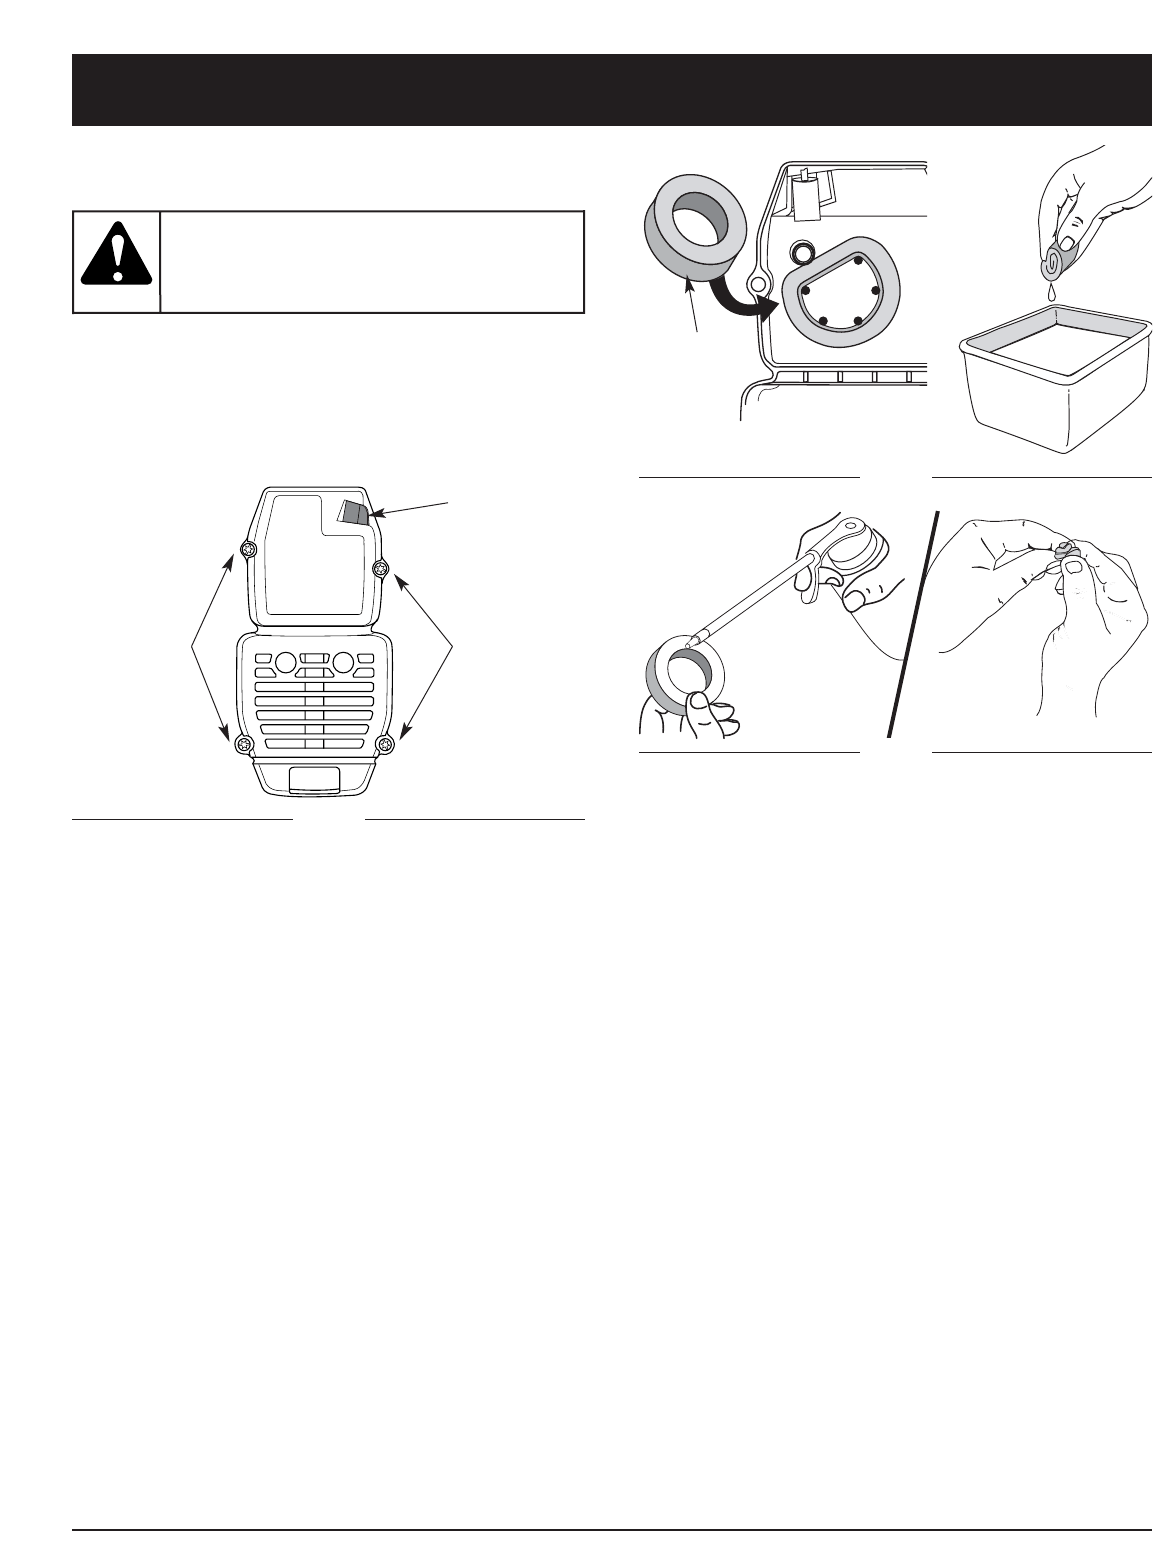 Page 13 of Craftsman Cultivator 316.29256 User Guide